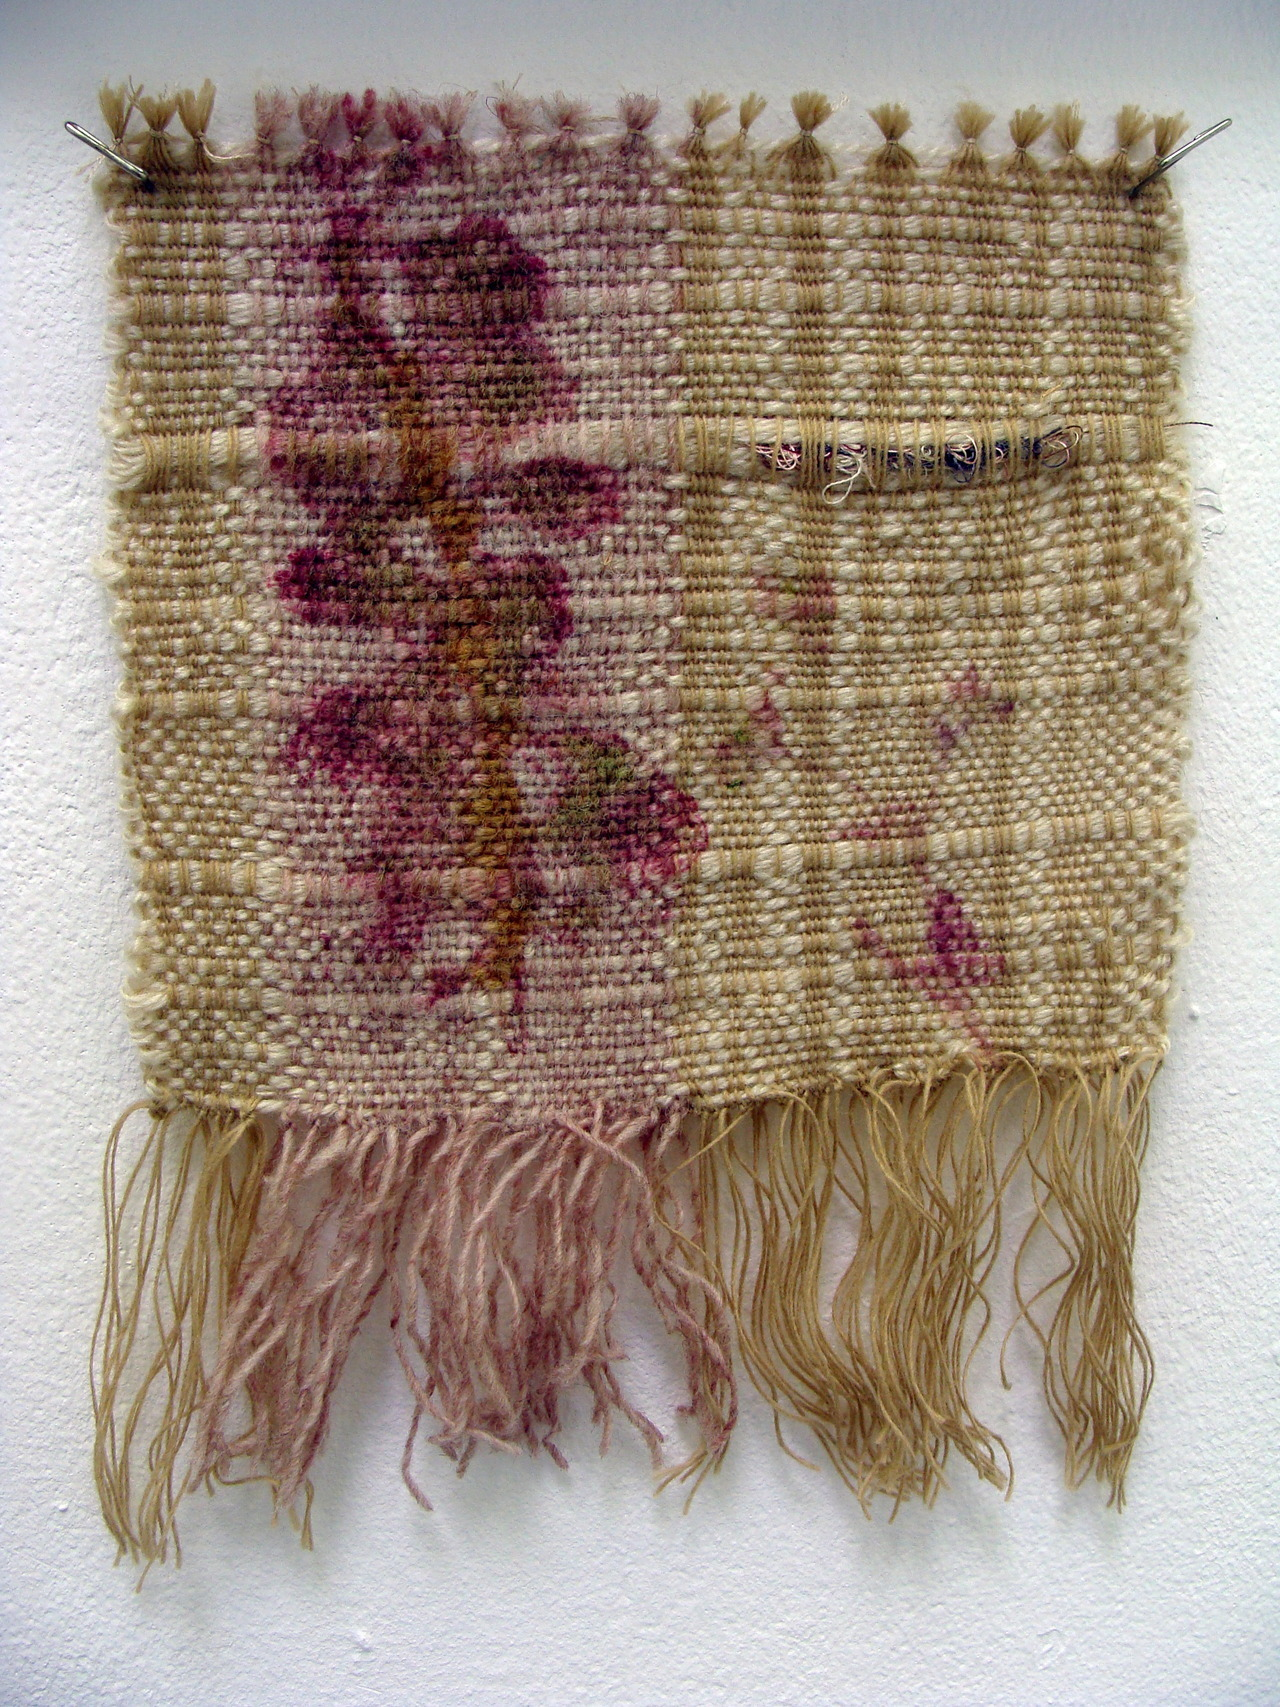 Tiny tapestry weaving with a botanical dye print from a red barberry shrub, woven by Stephany Latham.  An amazing dye plant that makes a hot pink color.